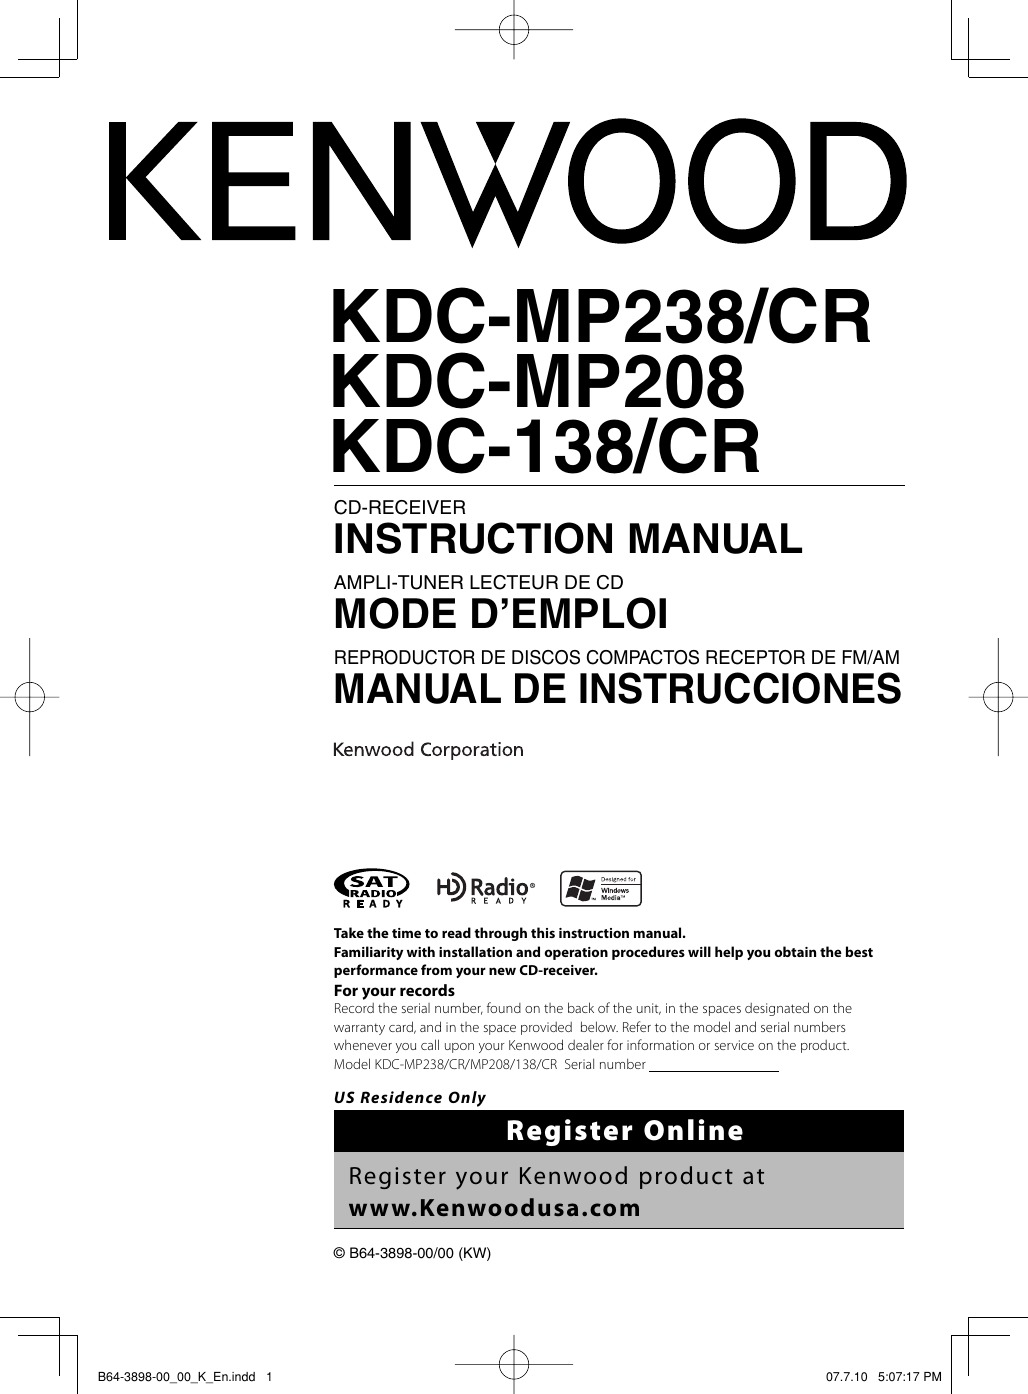 Kenwood Kdc 138 Radio Cd Player Instruction Manual B64